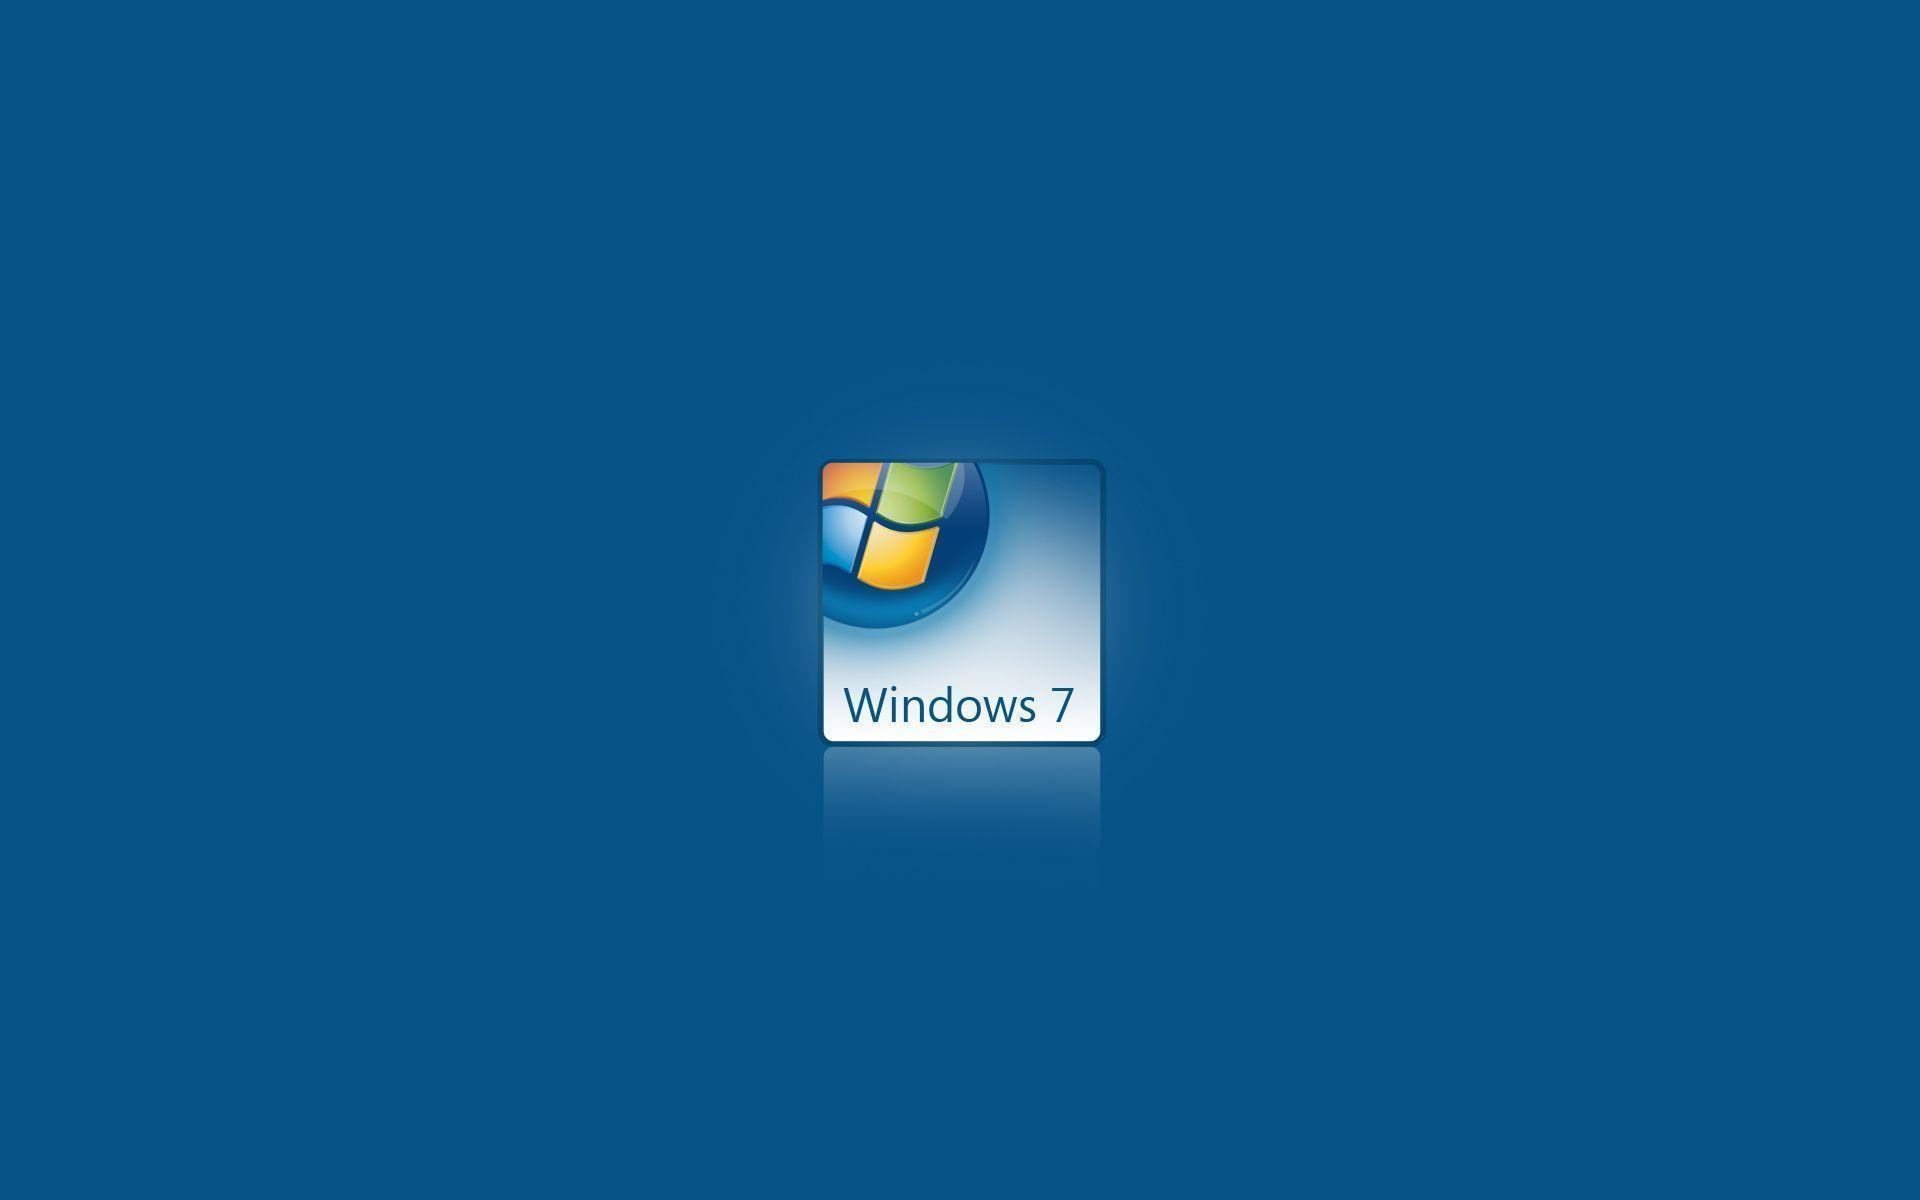 microsoft windows wallpapers by gifteddeviant - photo #27